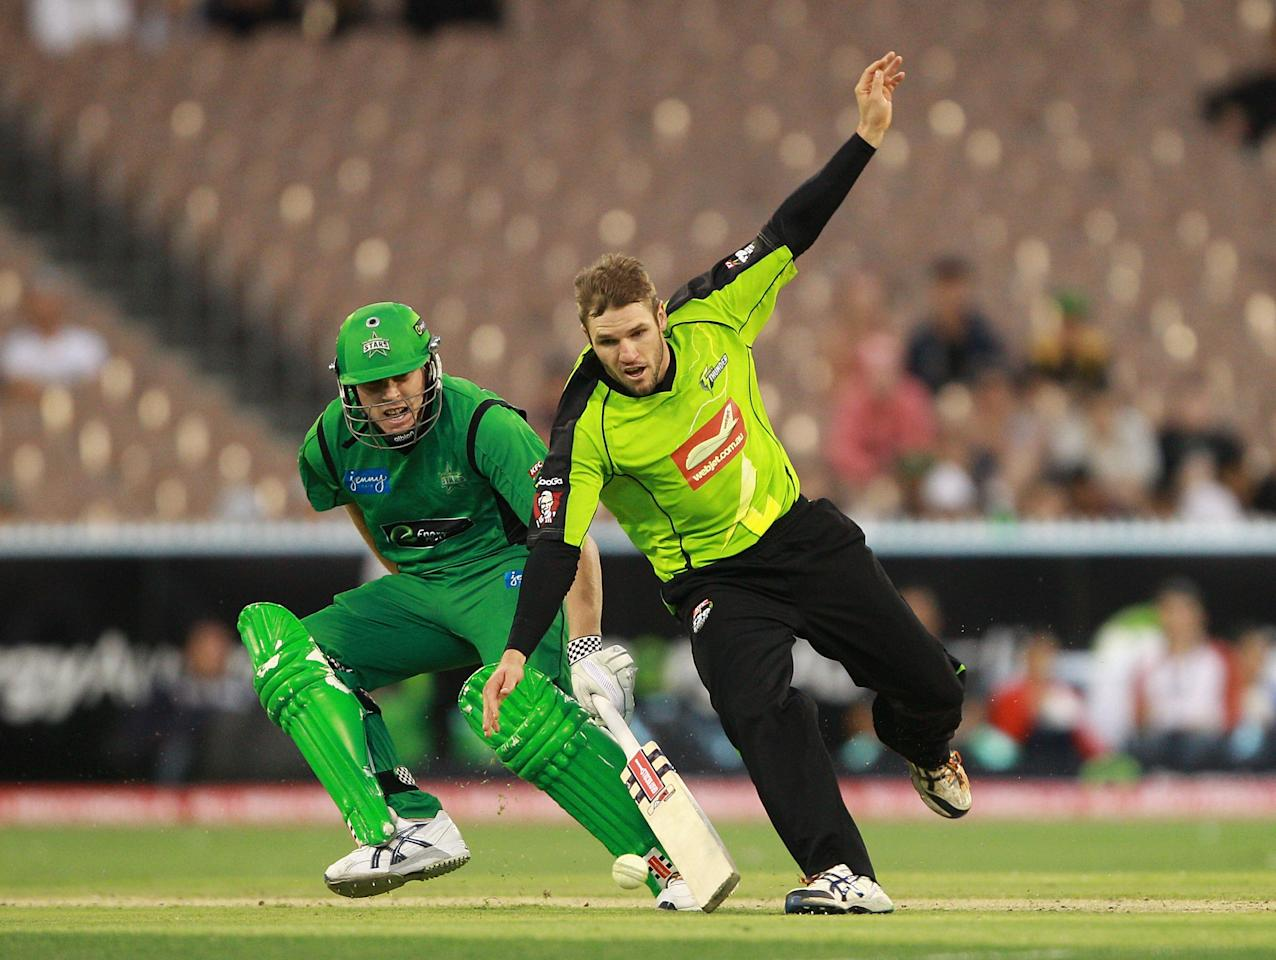 MELBOURNE, AUSTRALIA - JANUARY 08:  Simon Keen of the Thunder fields the ball during the Big Bash League match between the Melbourne Stars and the Sydney Thunder at Melbourne Cricket Ground on January 8, 2013 in Melbourne, Australia.  (Photo by Robert Prezioso/Getty Images)